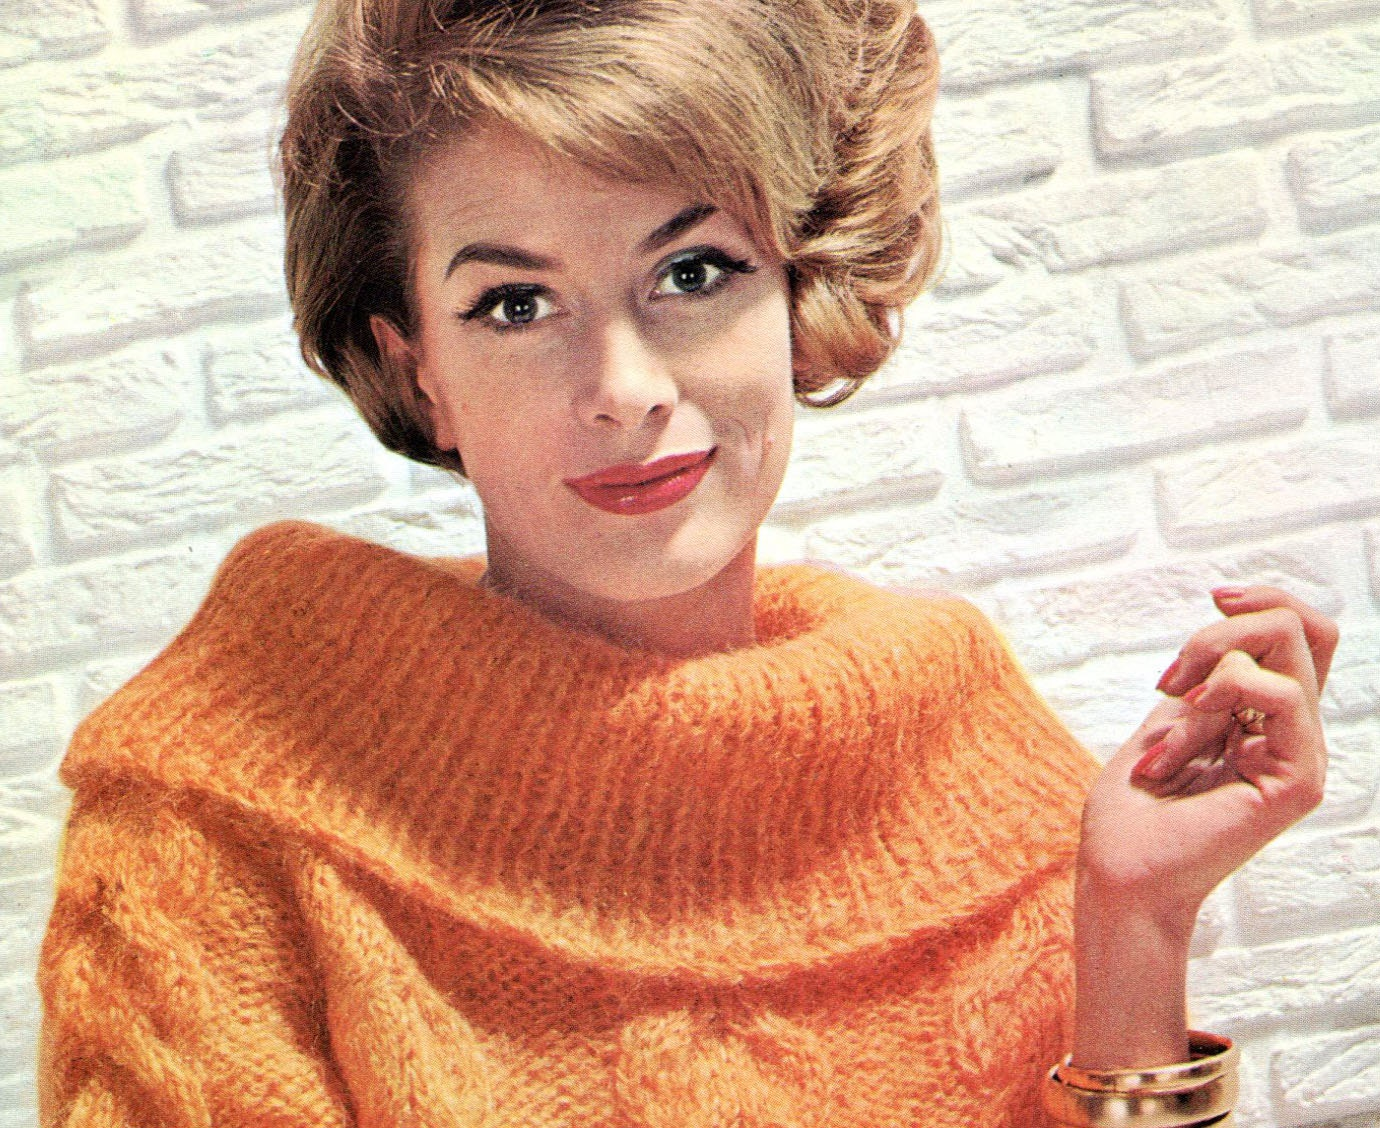 Cowl Neck Hoodie Knitting Pattern : Ladies 1960s Retro Cowl-neck Pullover PDF KNITTING